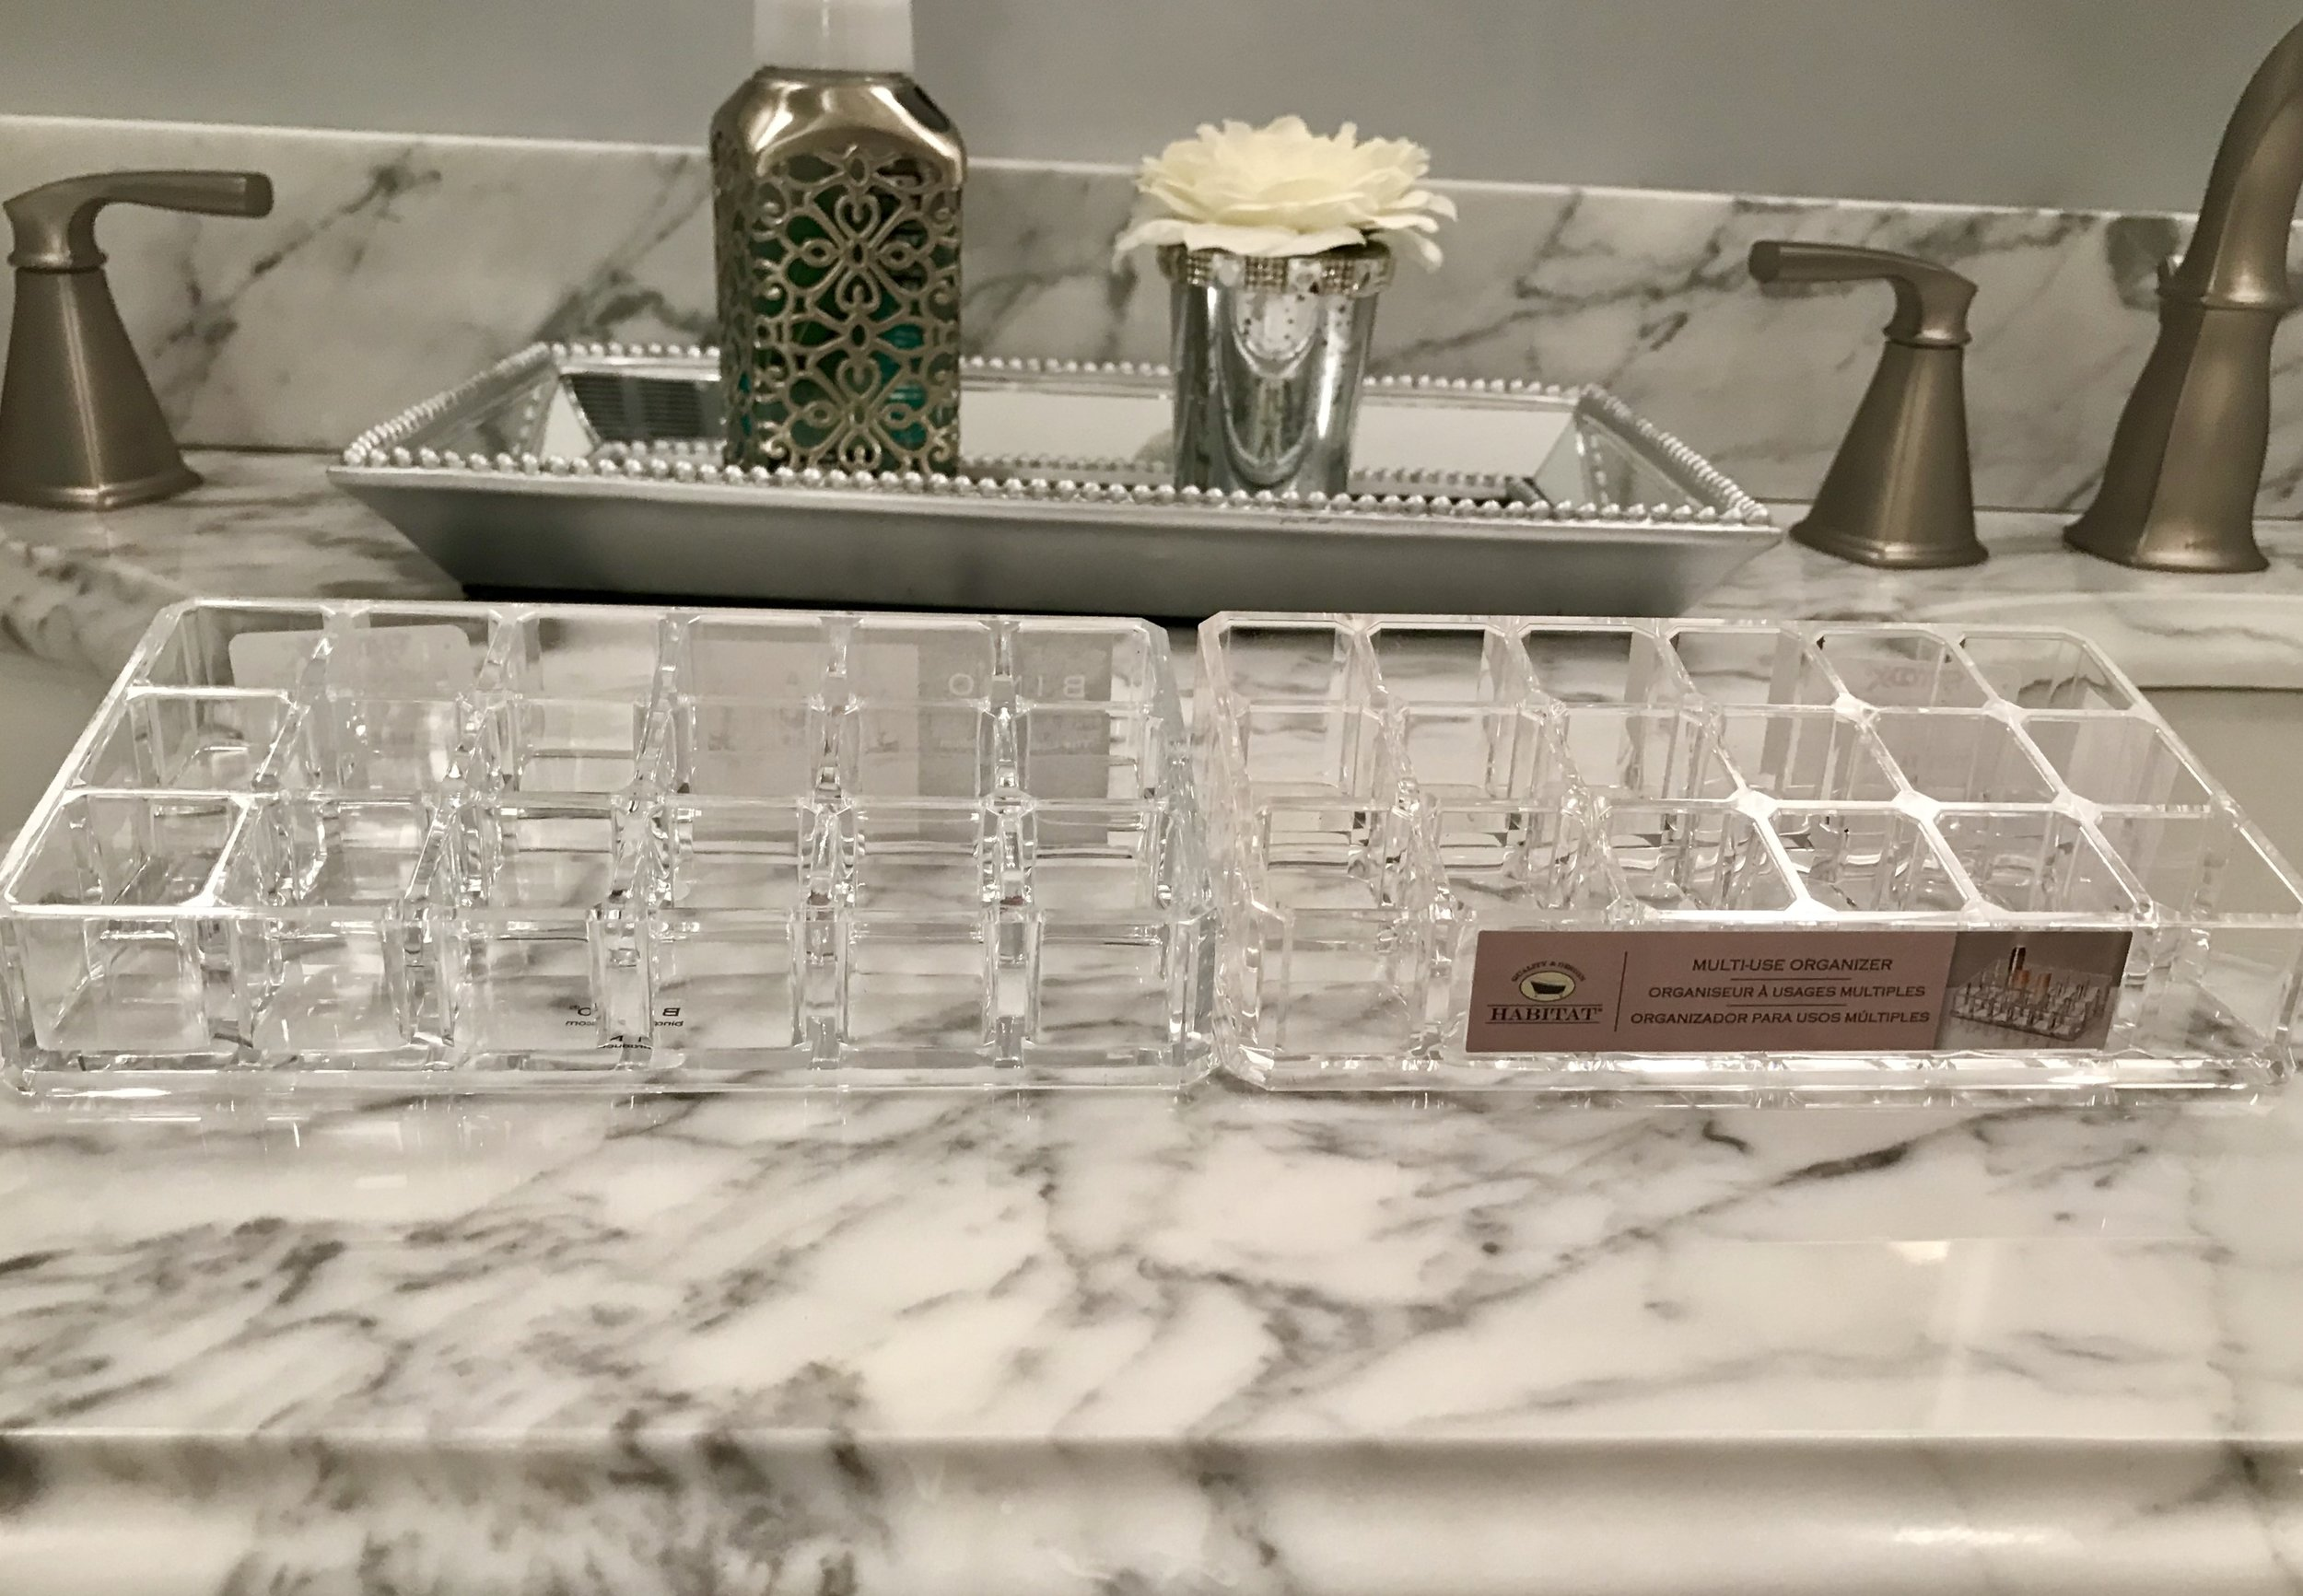 I  love the look of clear acrylic storage, especially for make-up storage.  I went to TJ Maxx with the expectation of buying some of these storage items, and I love that there were some available for lipsticks and lip glosses!